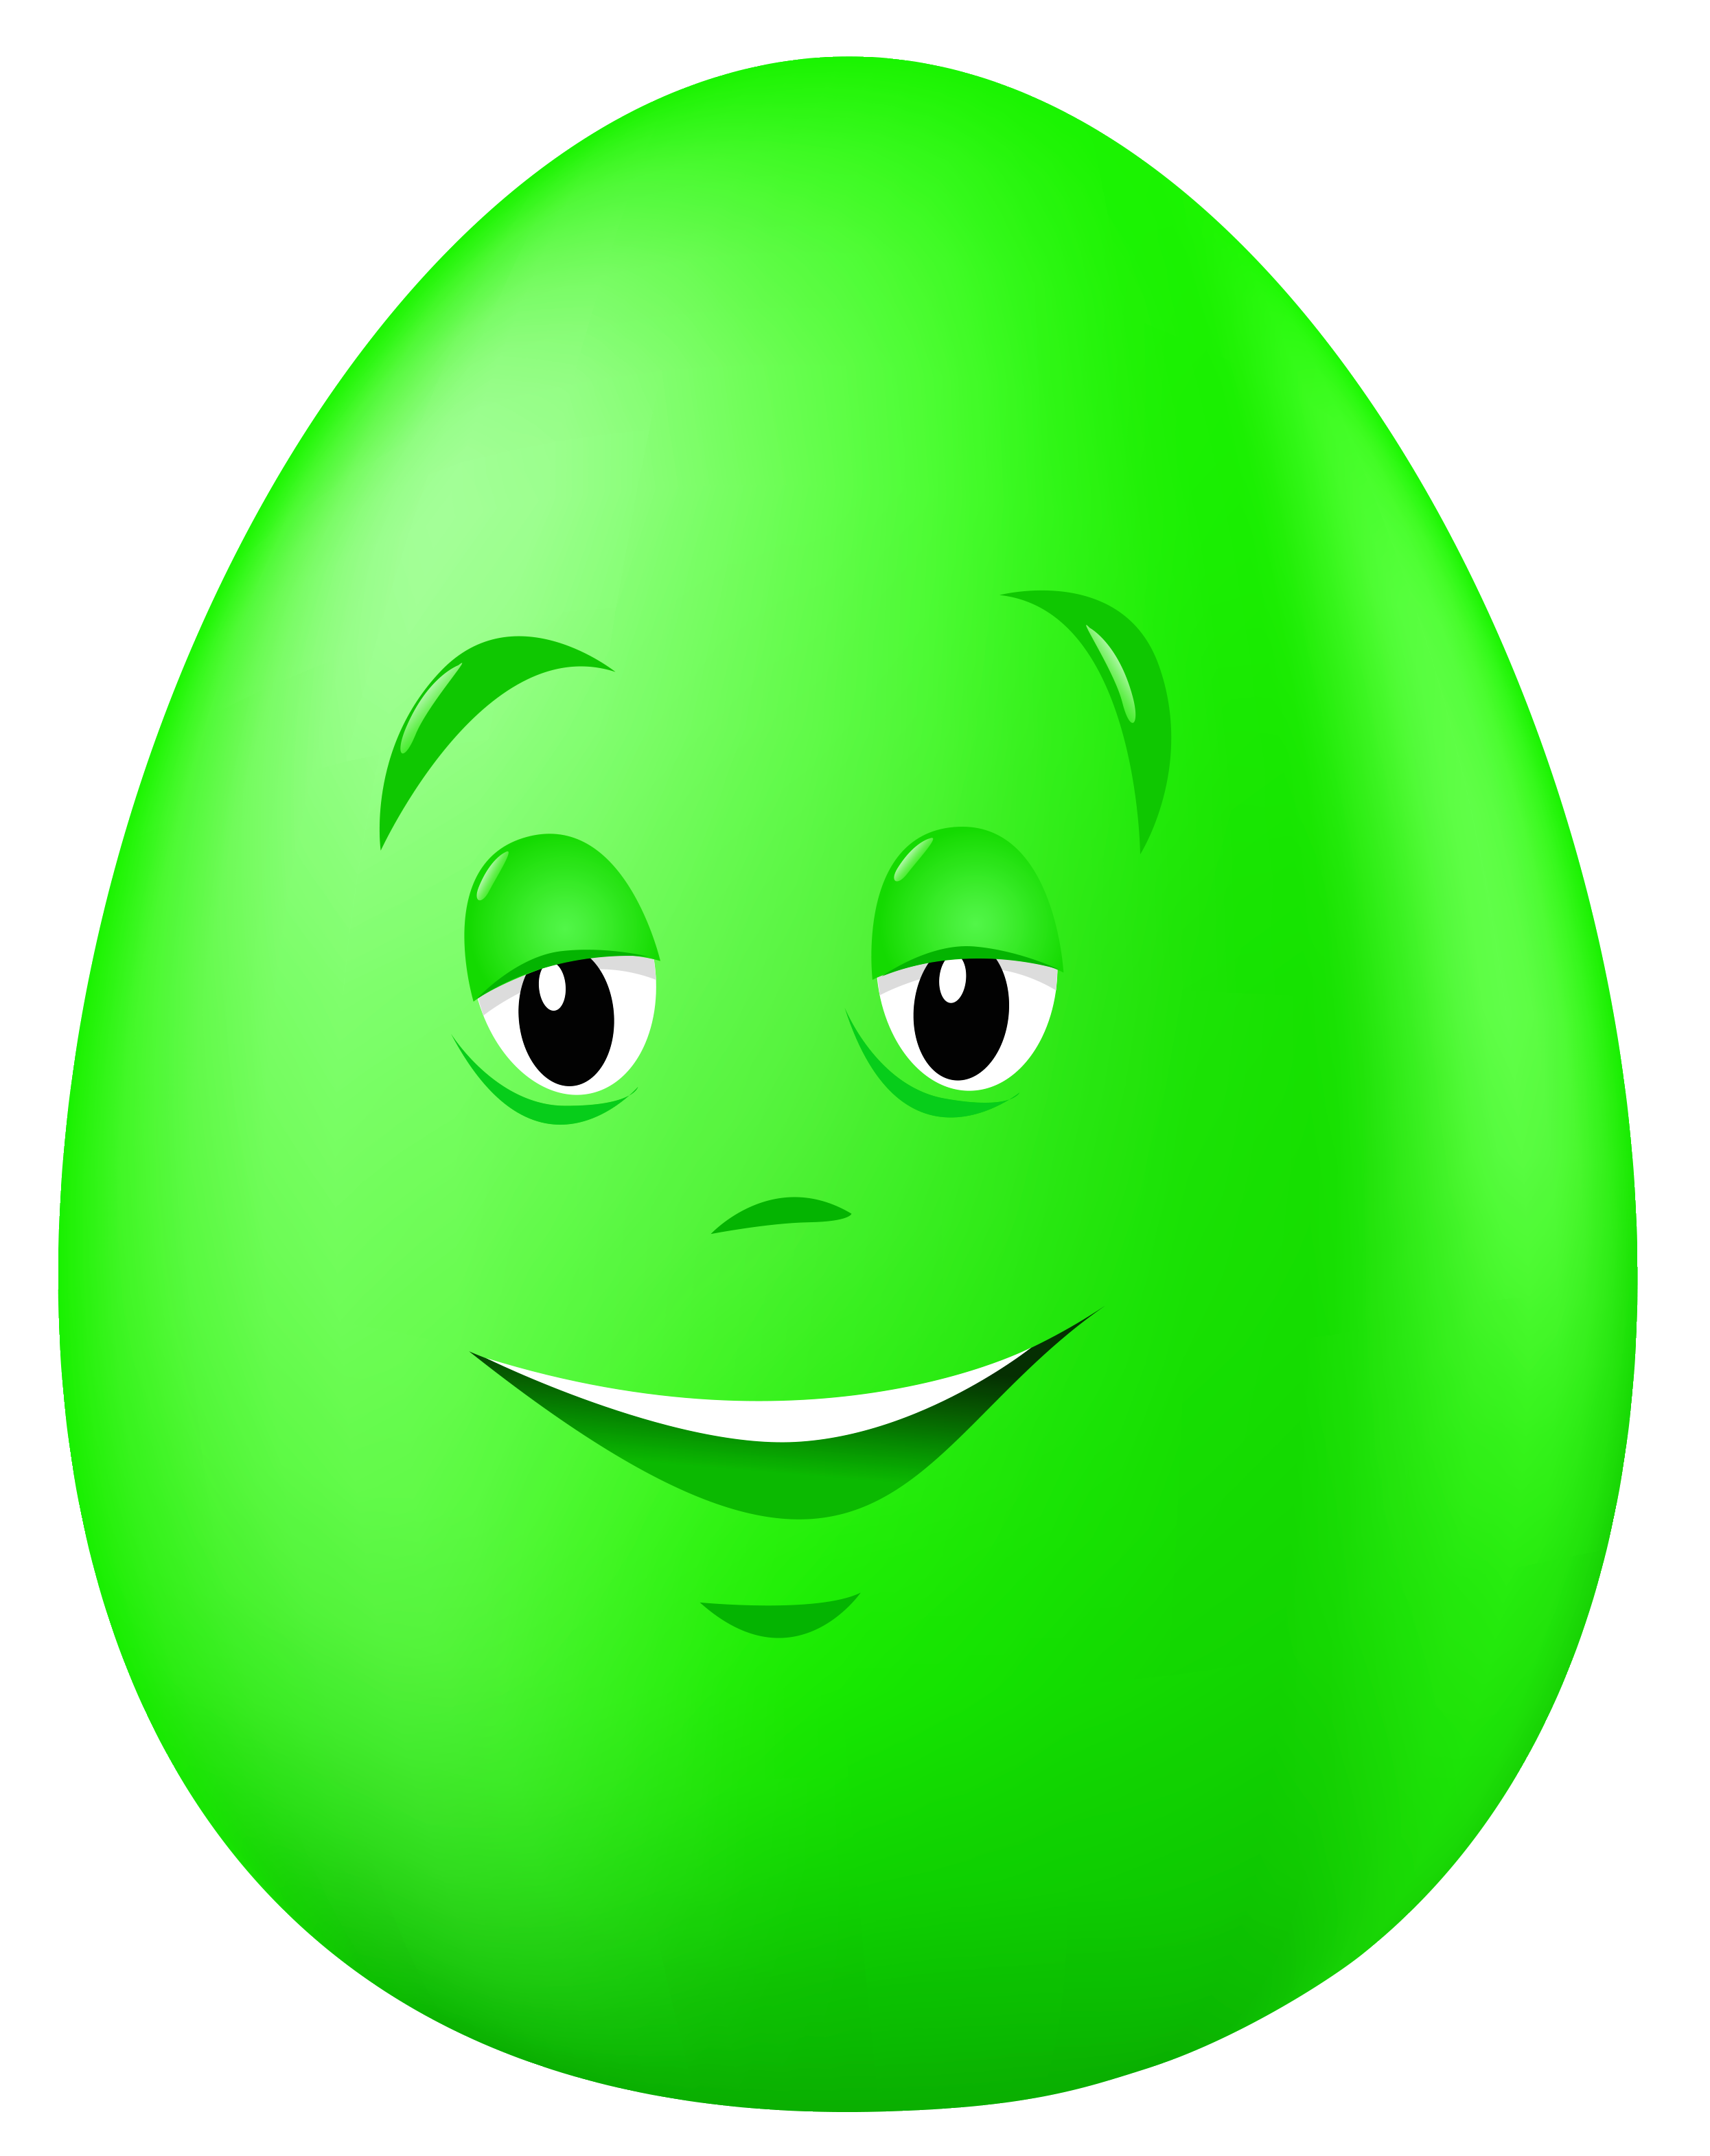 Green egg clipart clip library library Transparent Easter Green Egg with Face PNG Clipart Picture ... clip library library